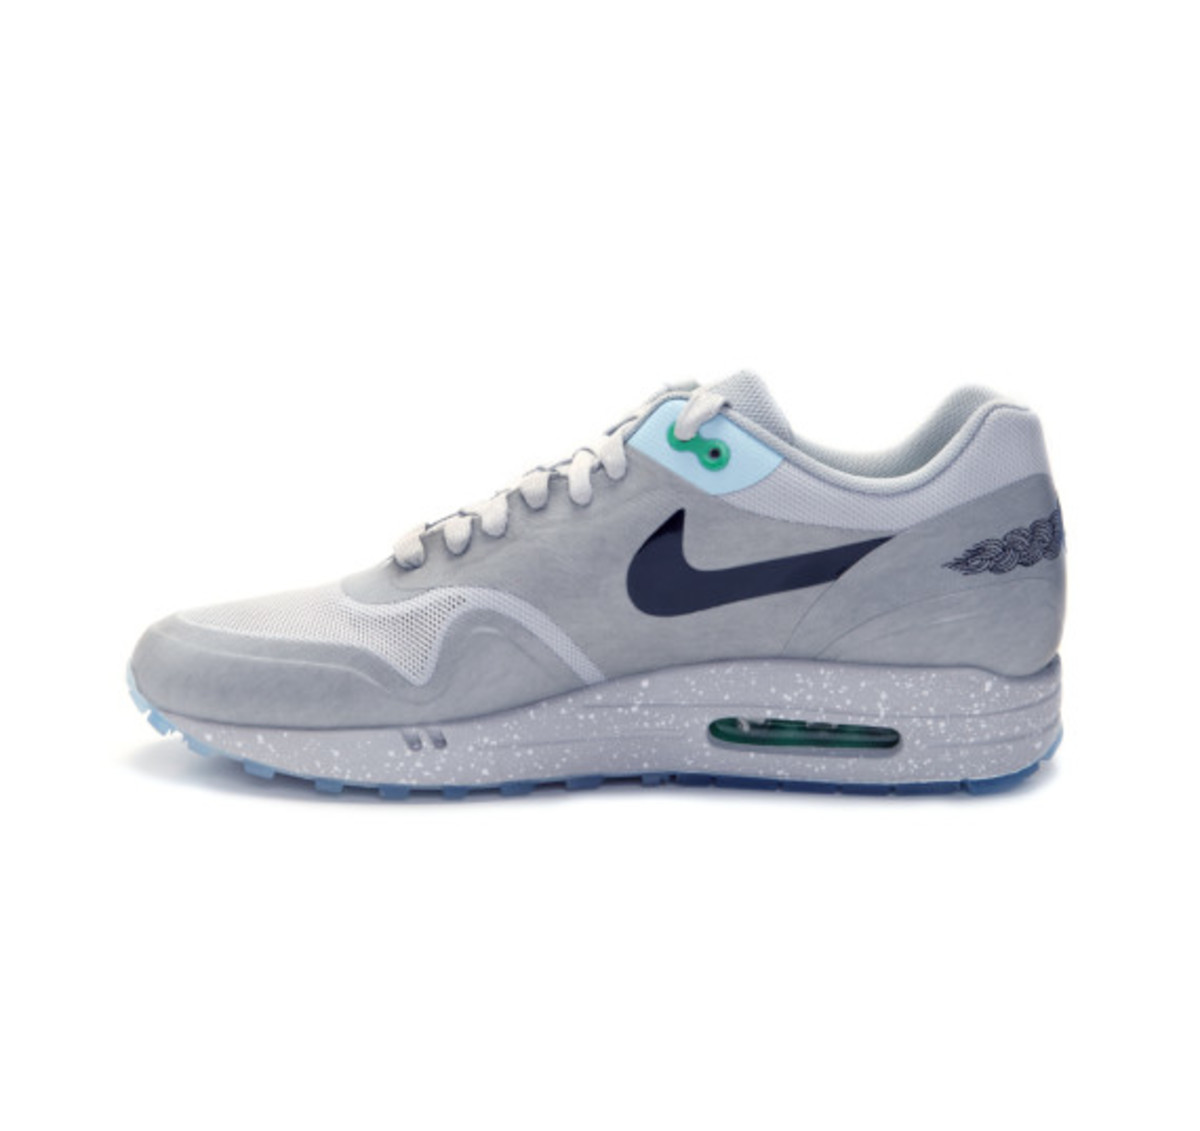 clot-nike-air-max-1-sp-005